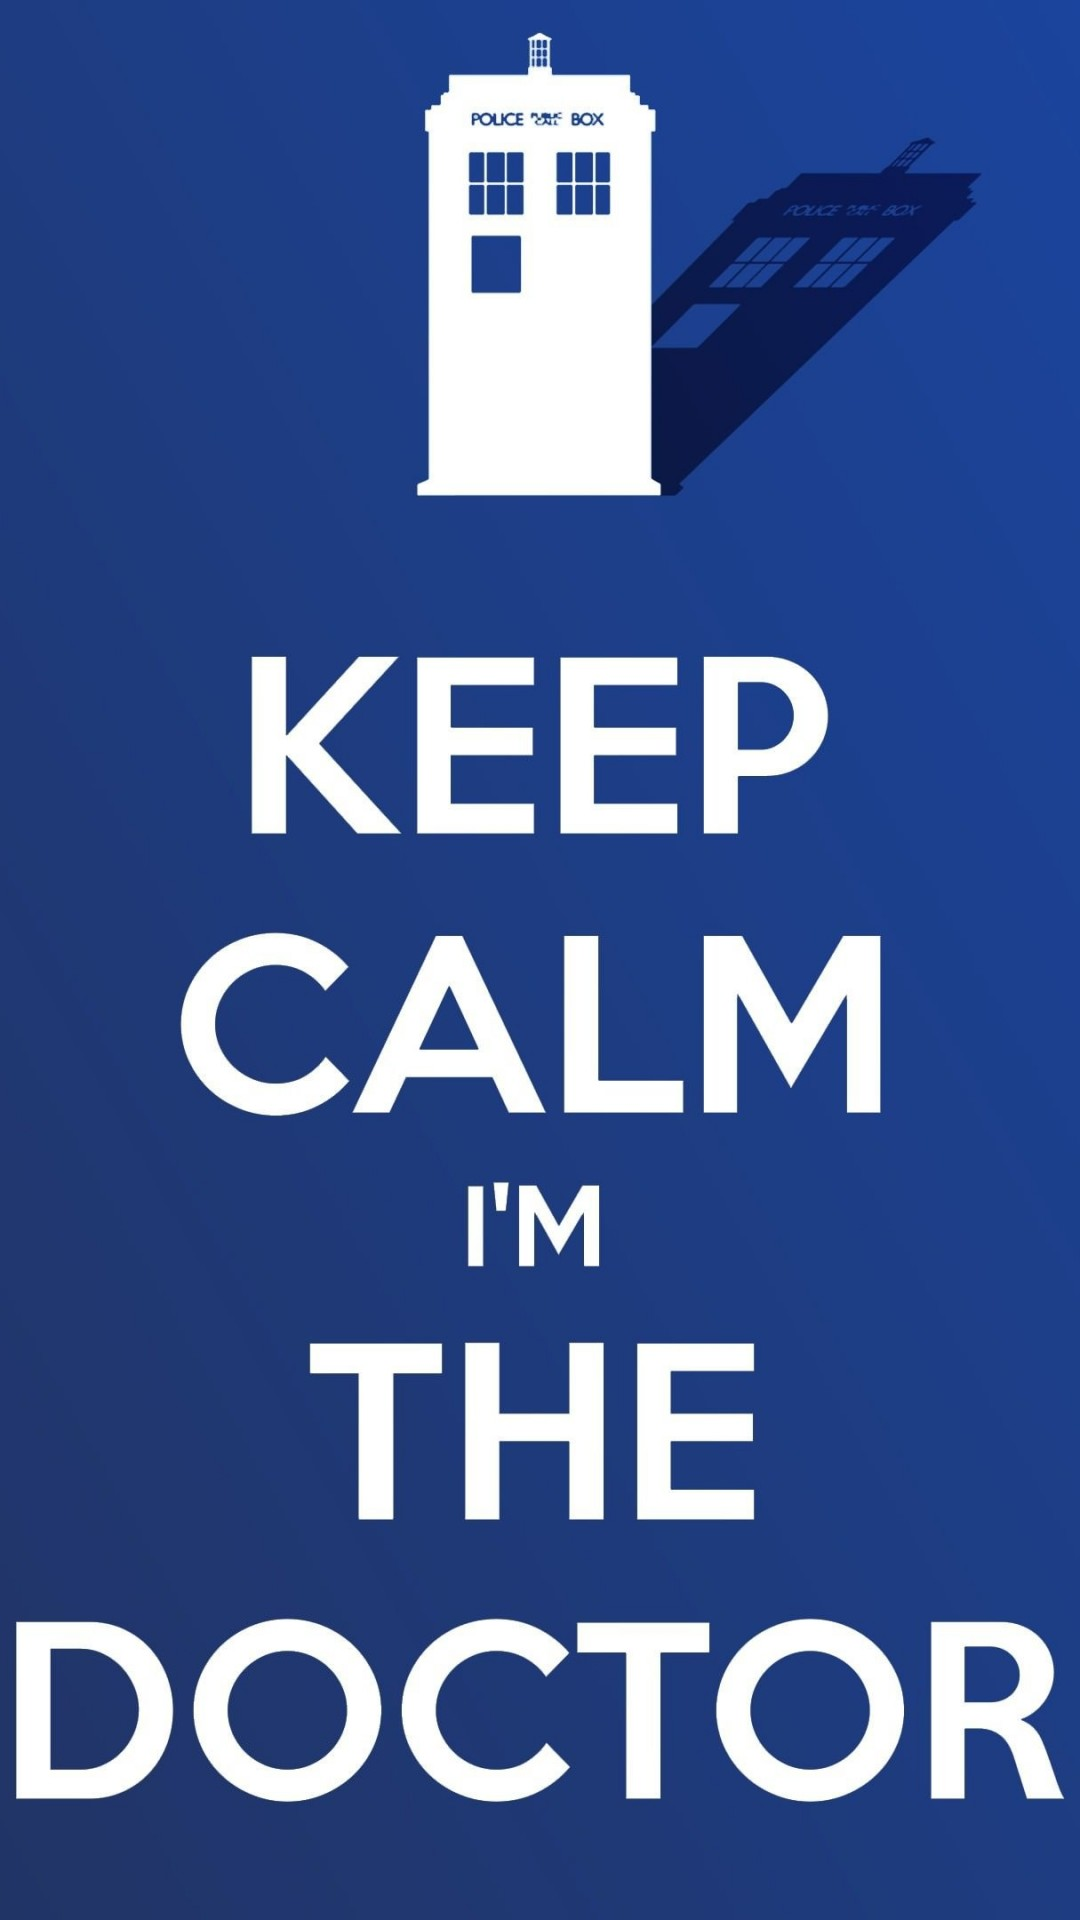 Keep Calm Im The Doctor Wallpaper for SAMSUNG Galaxy S4